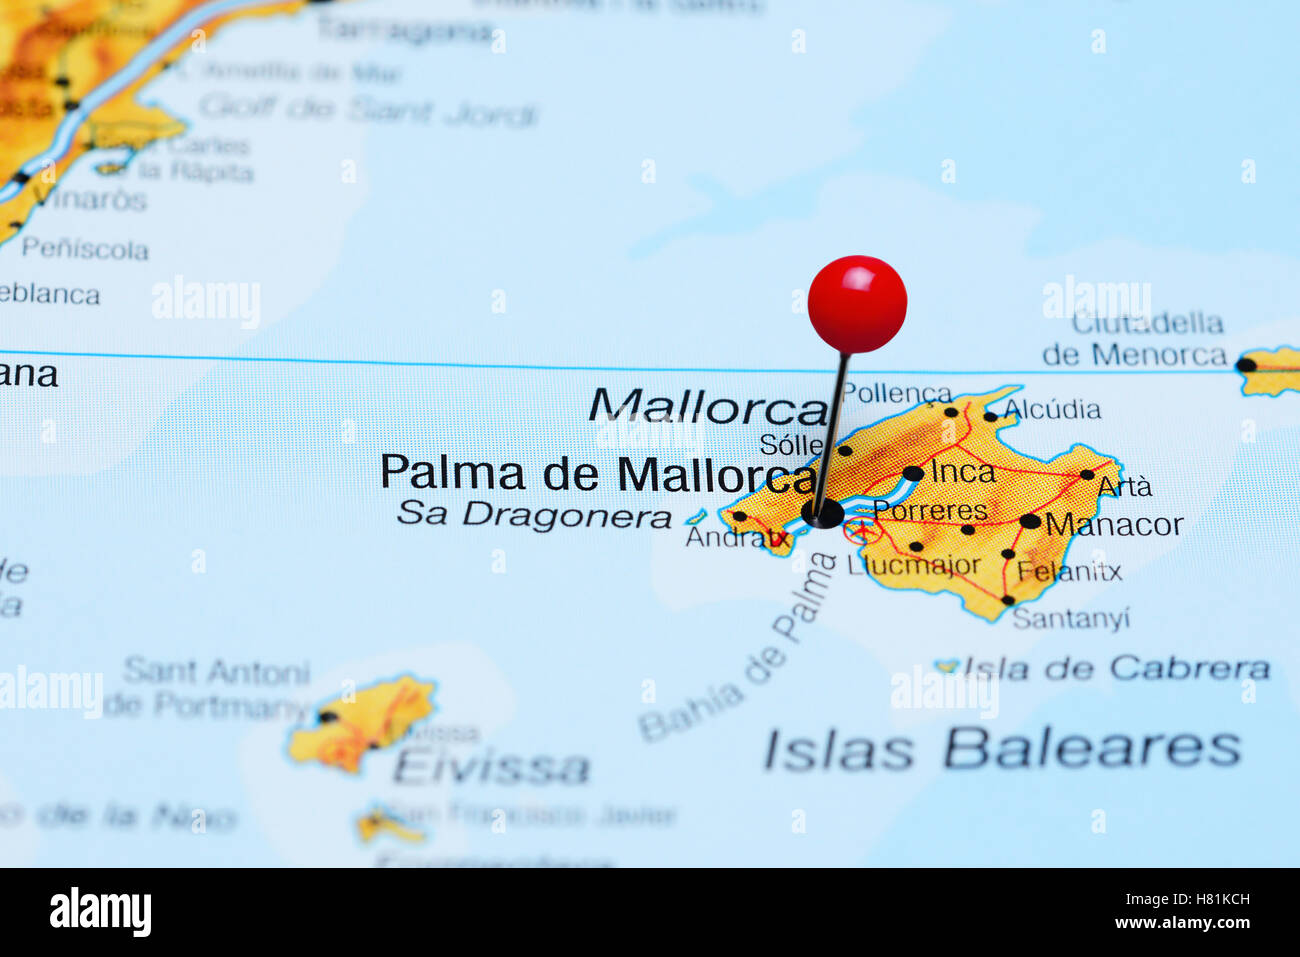 Palma De Mallorca Pinned On A Map Of Spain Stock Photo 125427025